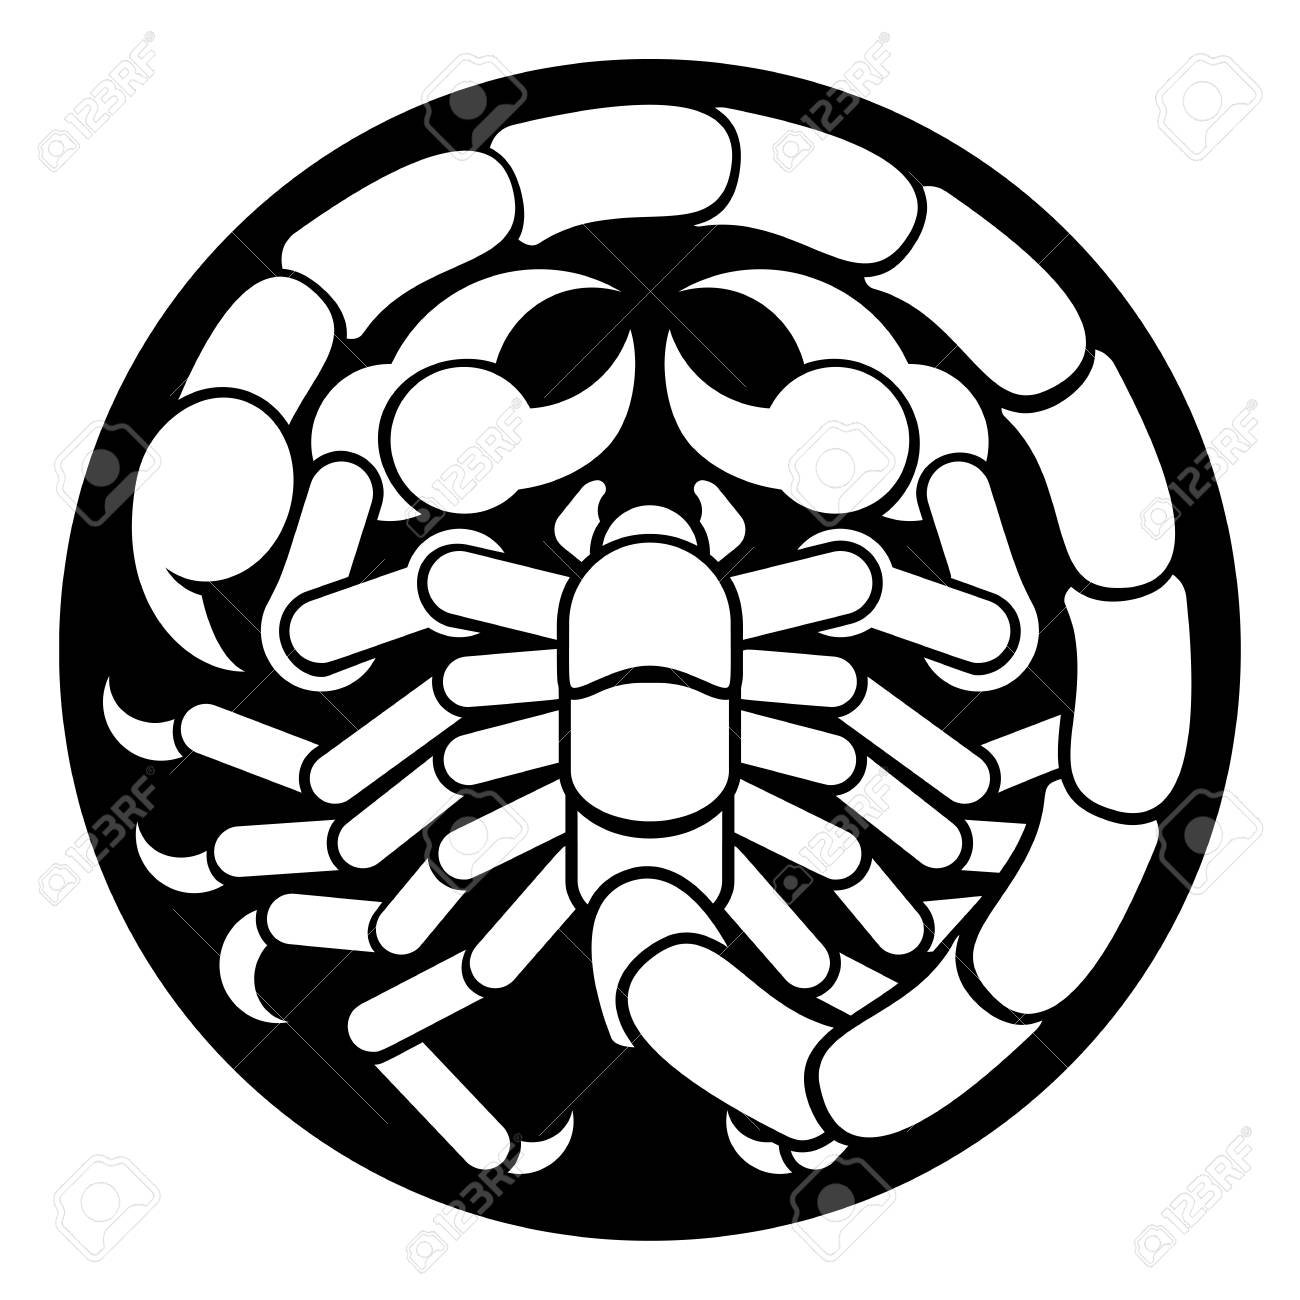 1300x1300 Zodiac Signs Circular Scorpio Scorpion Horoscope Astrology Symbol